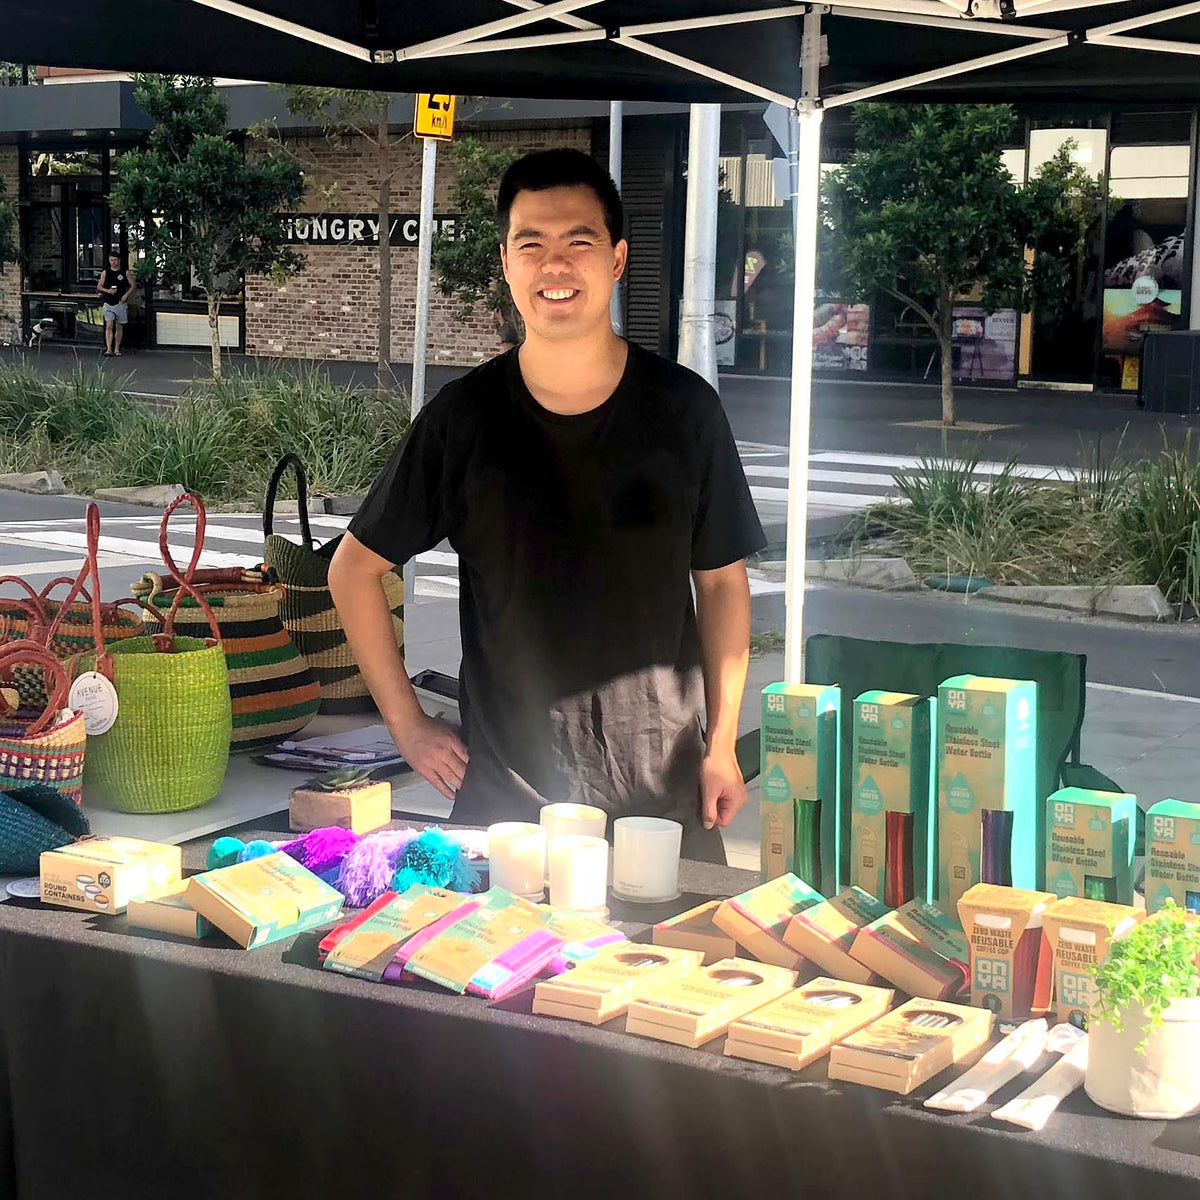 Young man with dark hair wearing a black tshirt standing behind a table filled with products smiling